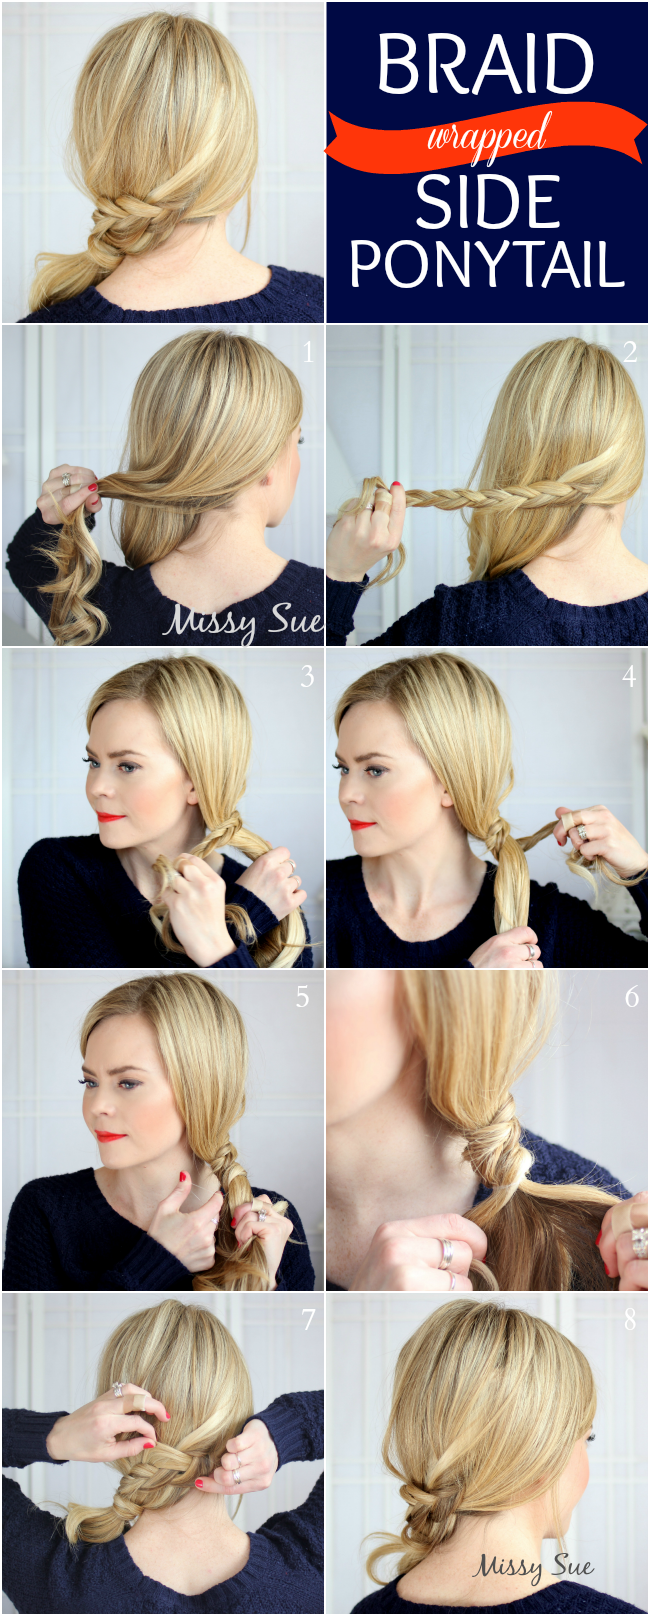 15 Easy Prom Hairstyles For Long Hair You Can Diy At Home Detailed Step By Step Tutorial Sun Kissed Violet Side Ponytail Hairstyles Simple Prom Hair 5 Minute Hairstyles